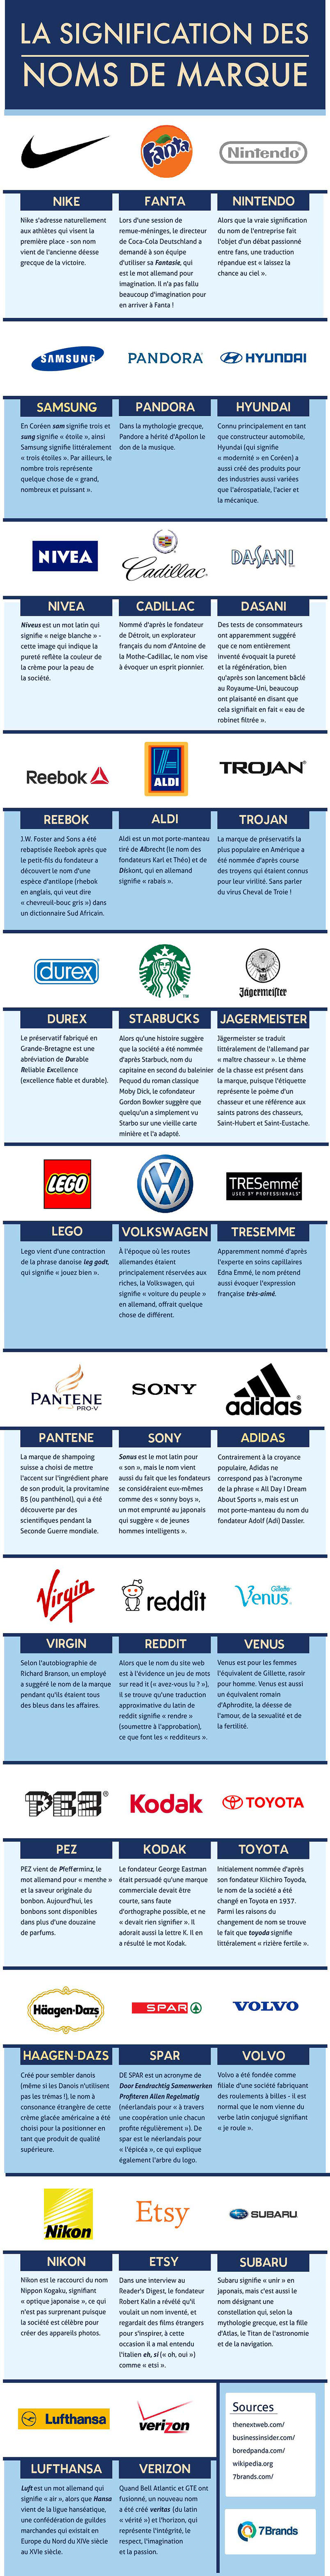 Translation of The Meaning of Brand Names into French